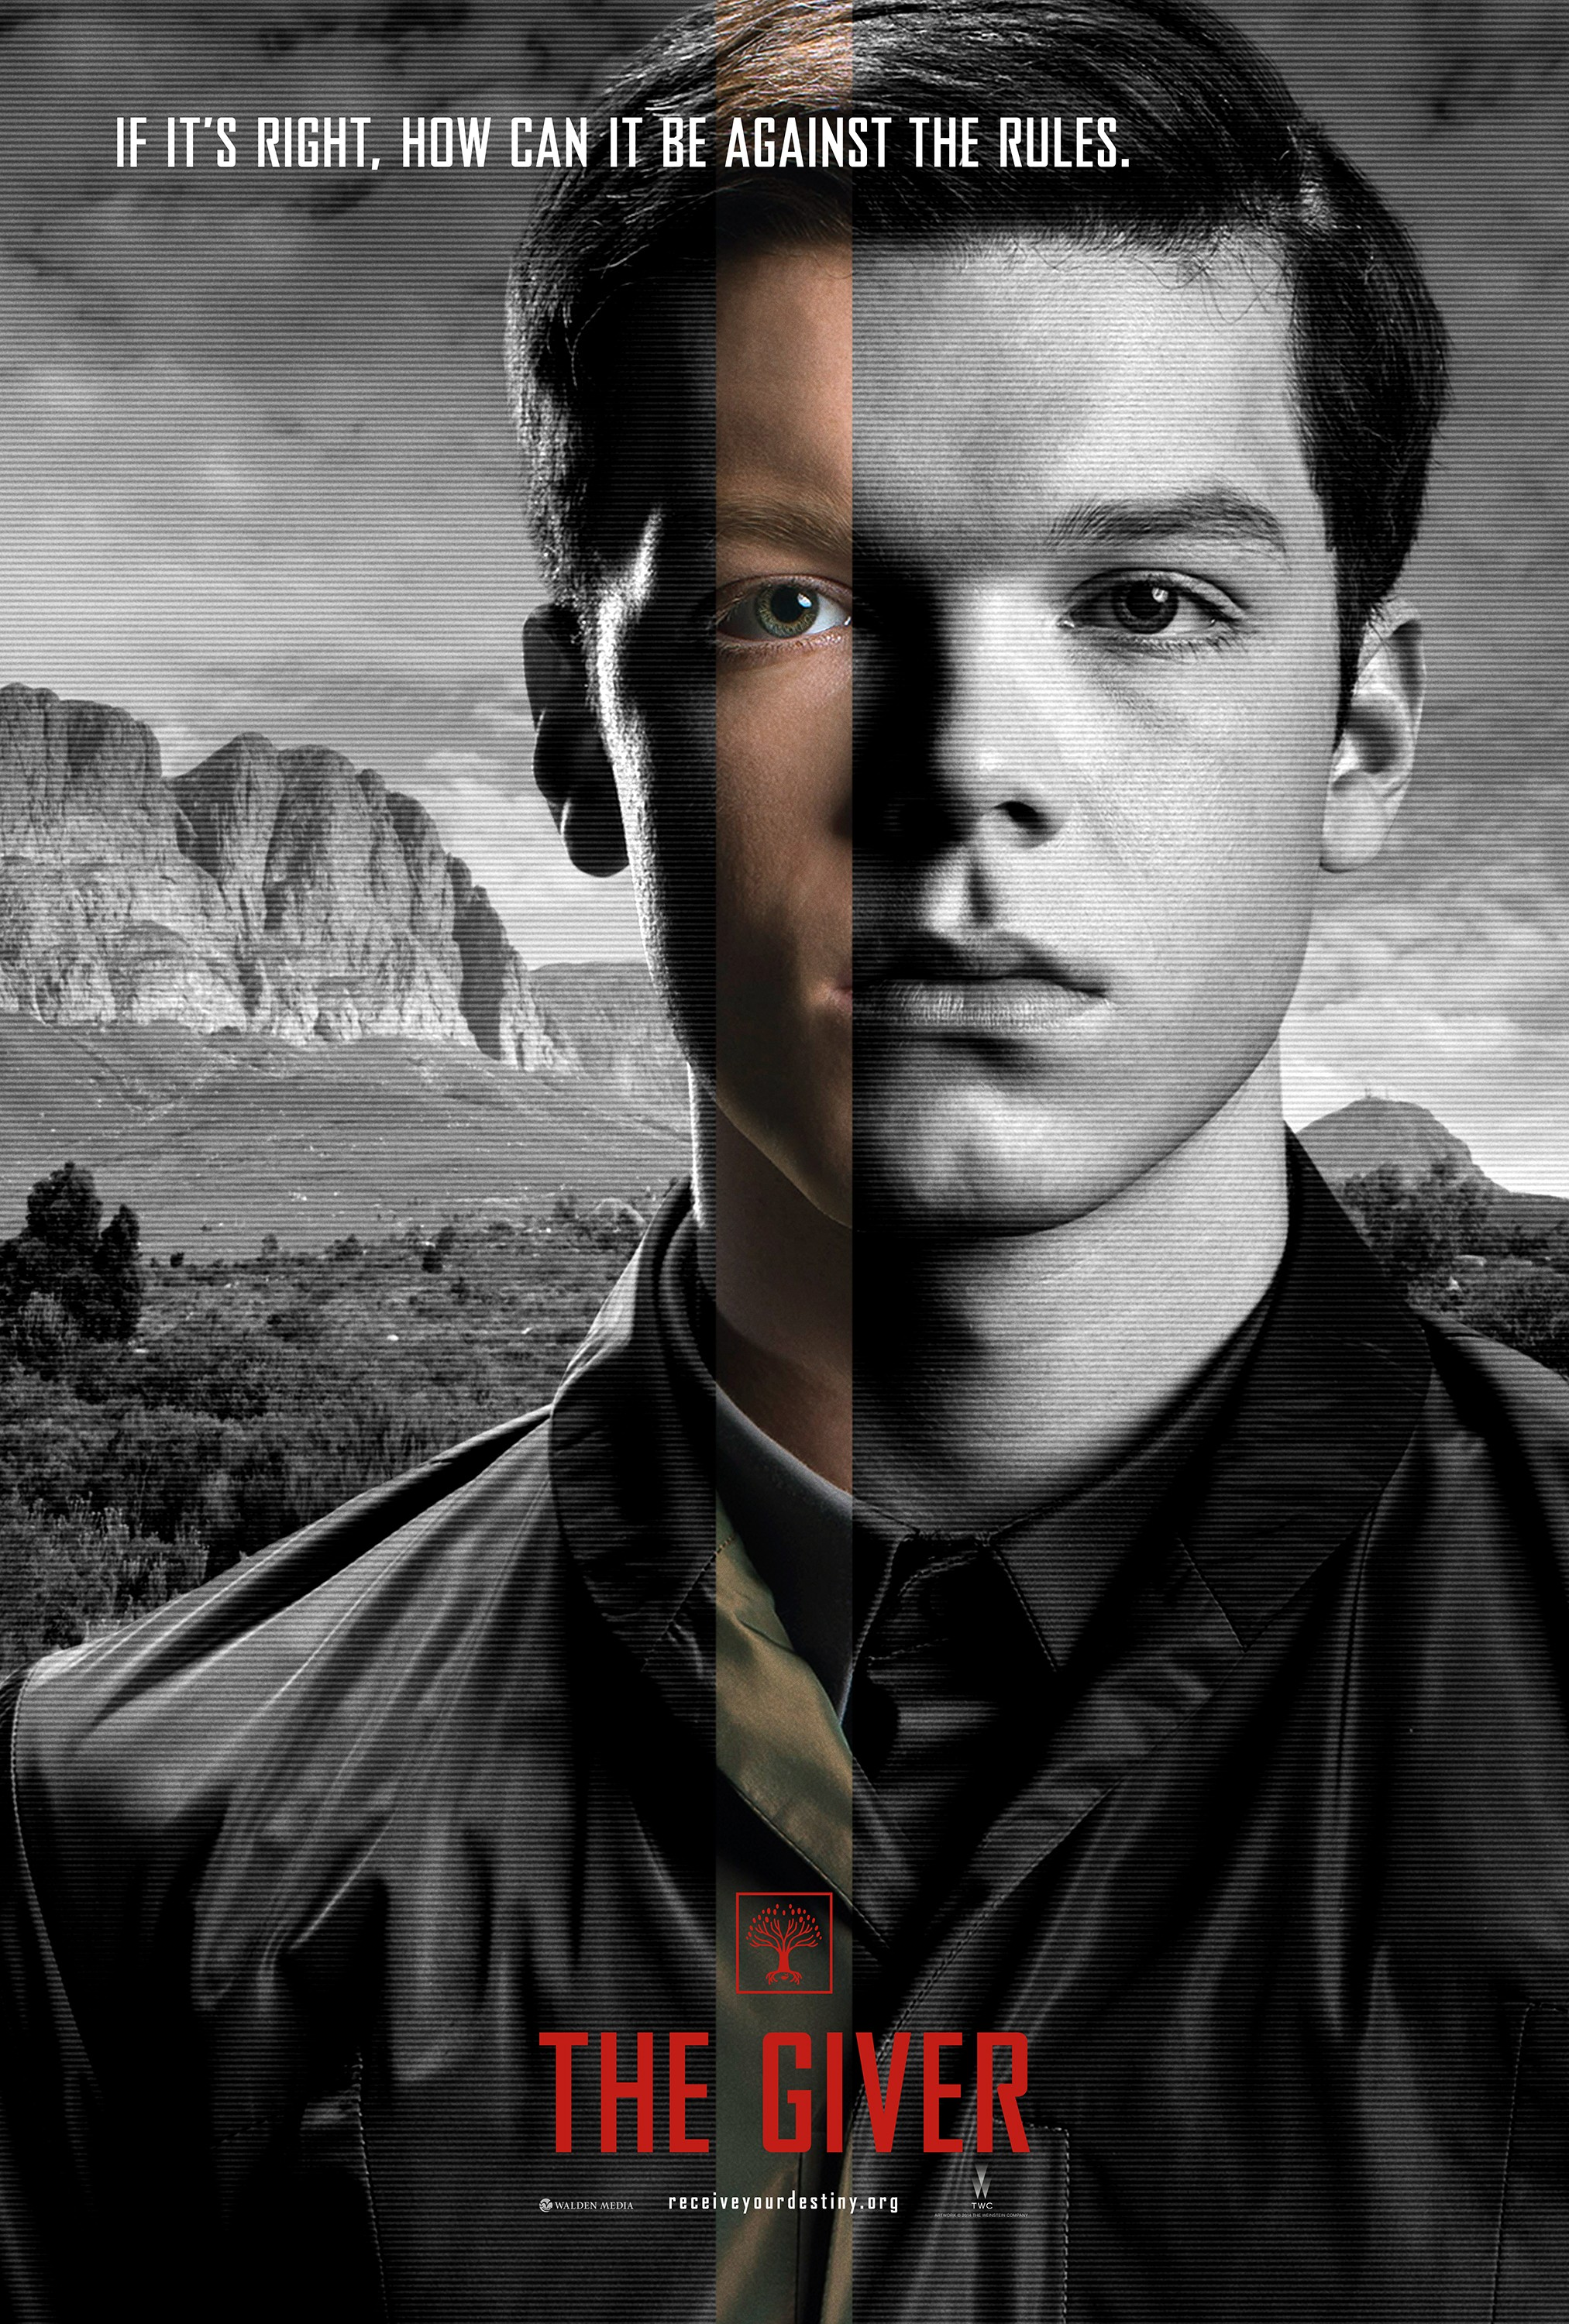 The Giver-Official Poster Banner PROMO XXLG-23MAIO2014-05